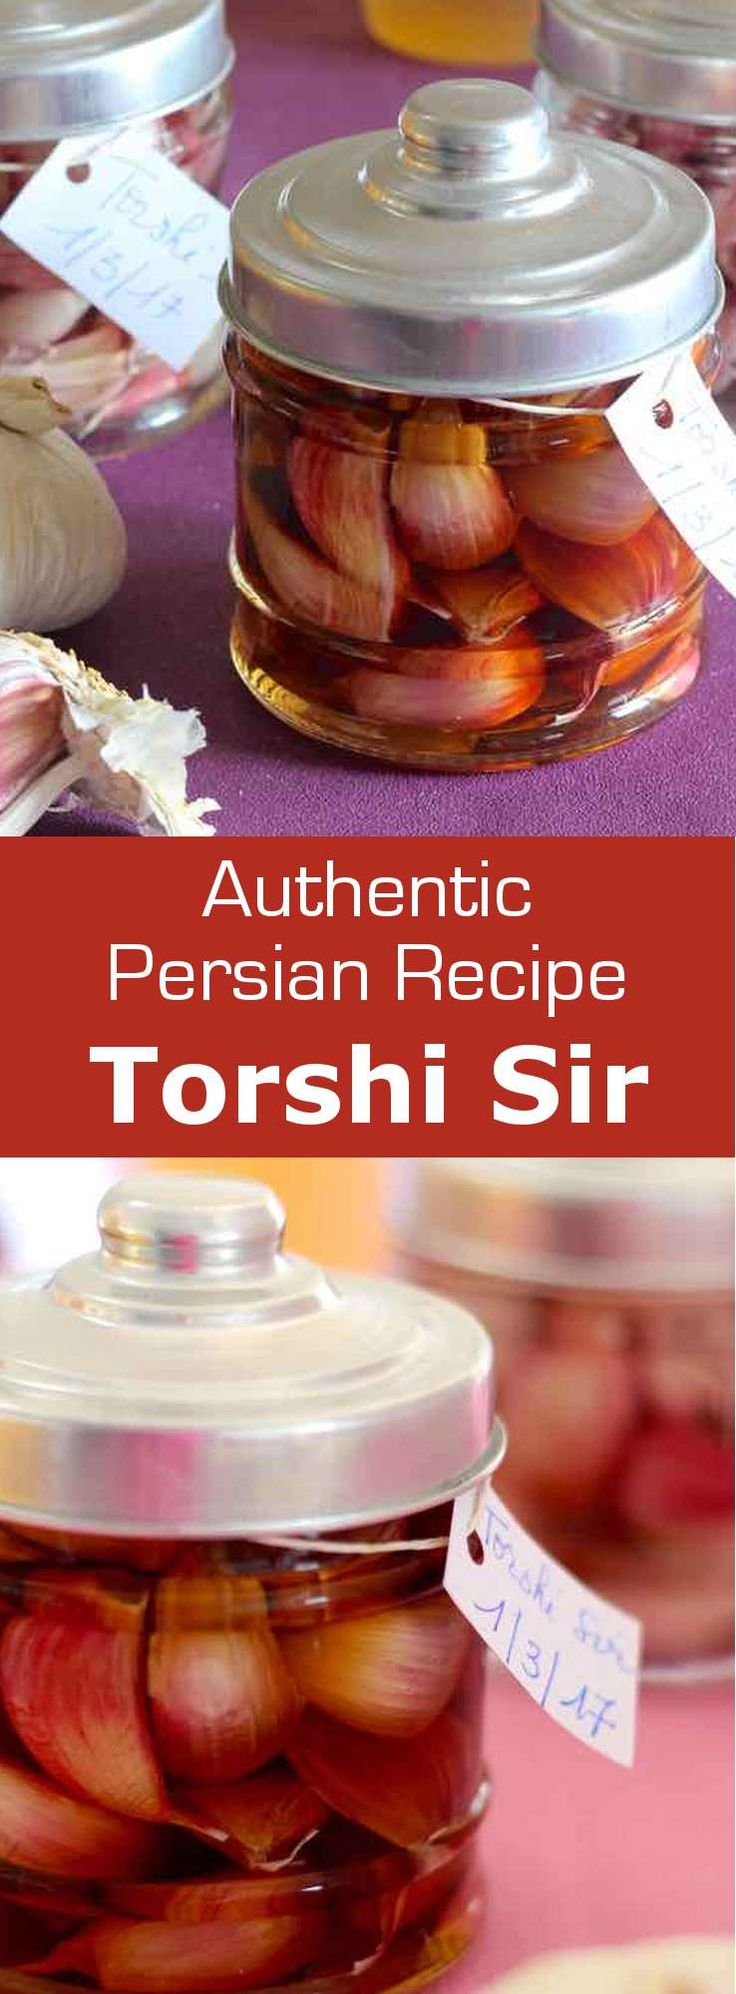 Torshi are pickled vegetables in brine that are popular in the Balkans, the Middle East as well as most Arab countries. Torshi seer is the garlic version.